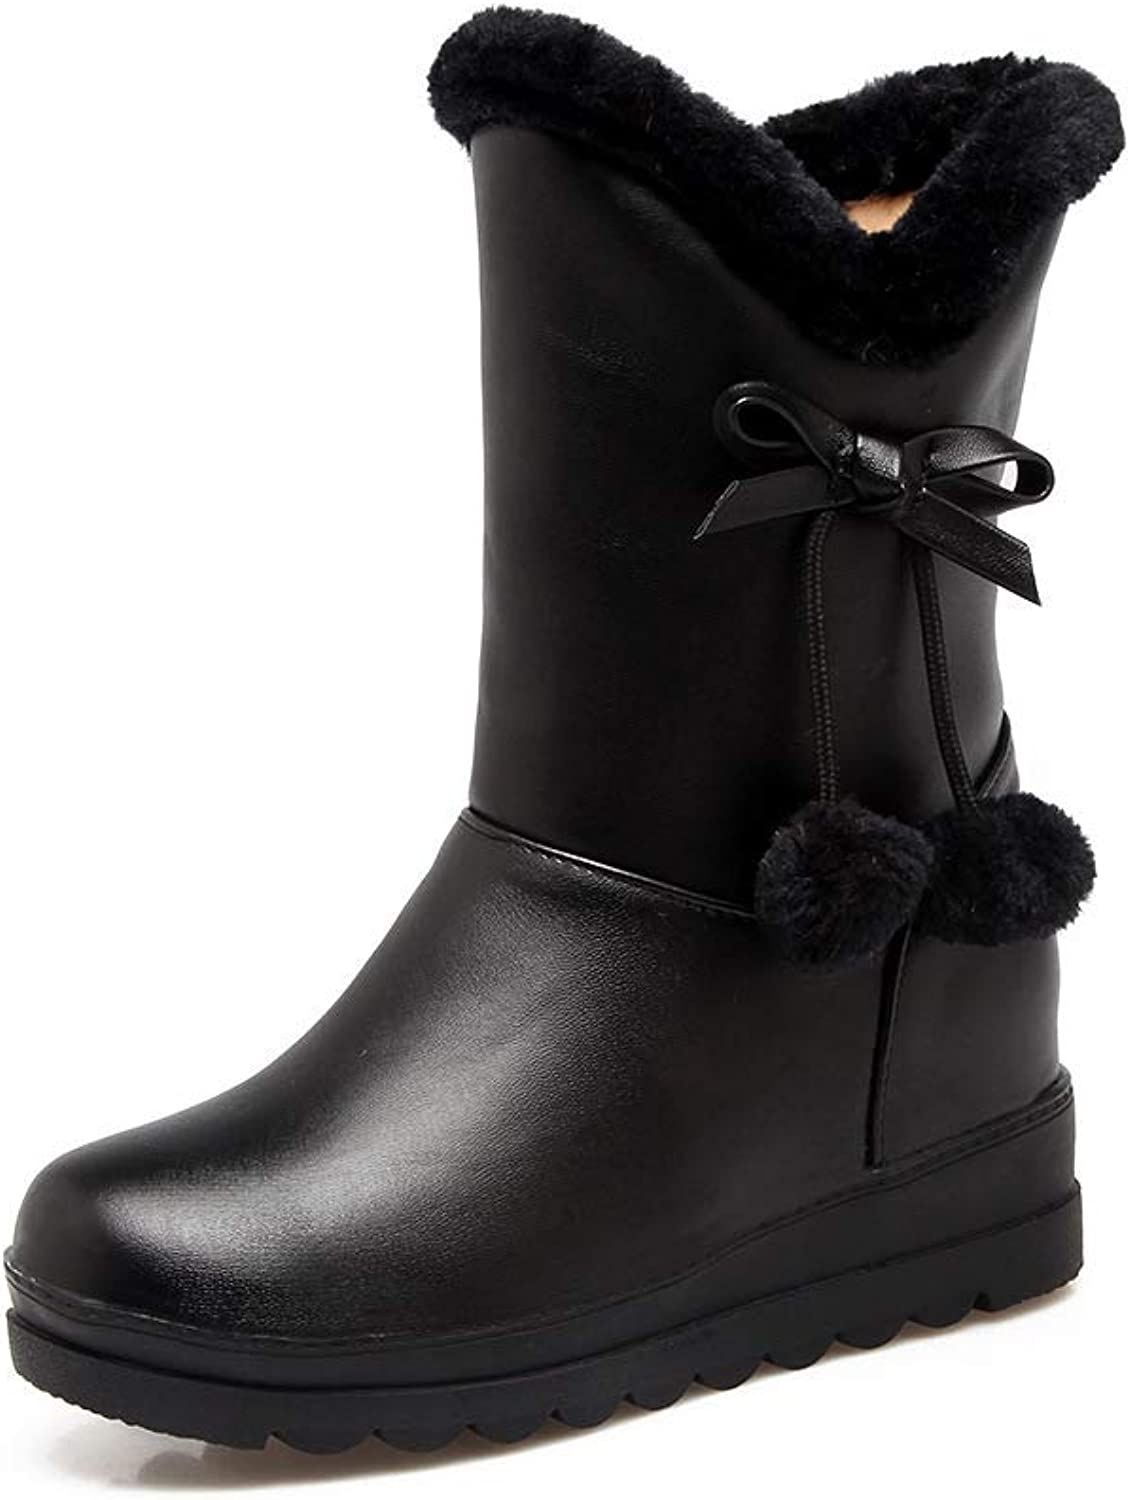 Women Fashion Snow Boots 2018 Winter Comfortable Warm Cotton Boots Outdoor Plush Walking Boots Size 30-42,Black,34